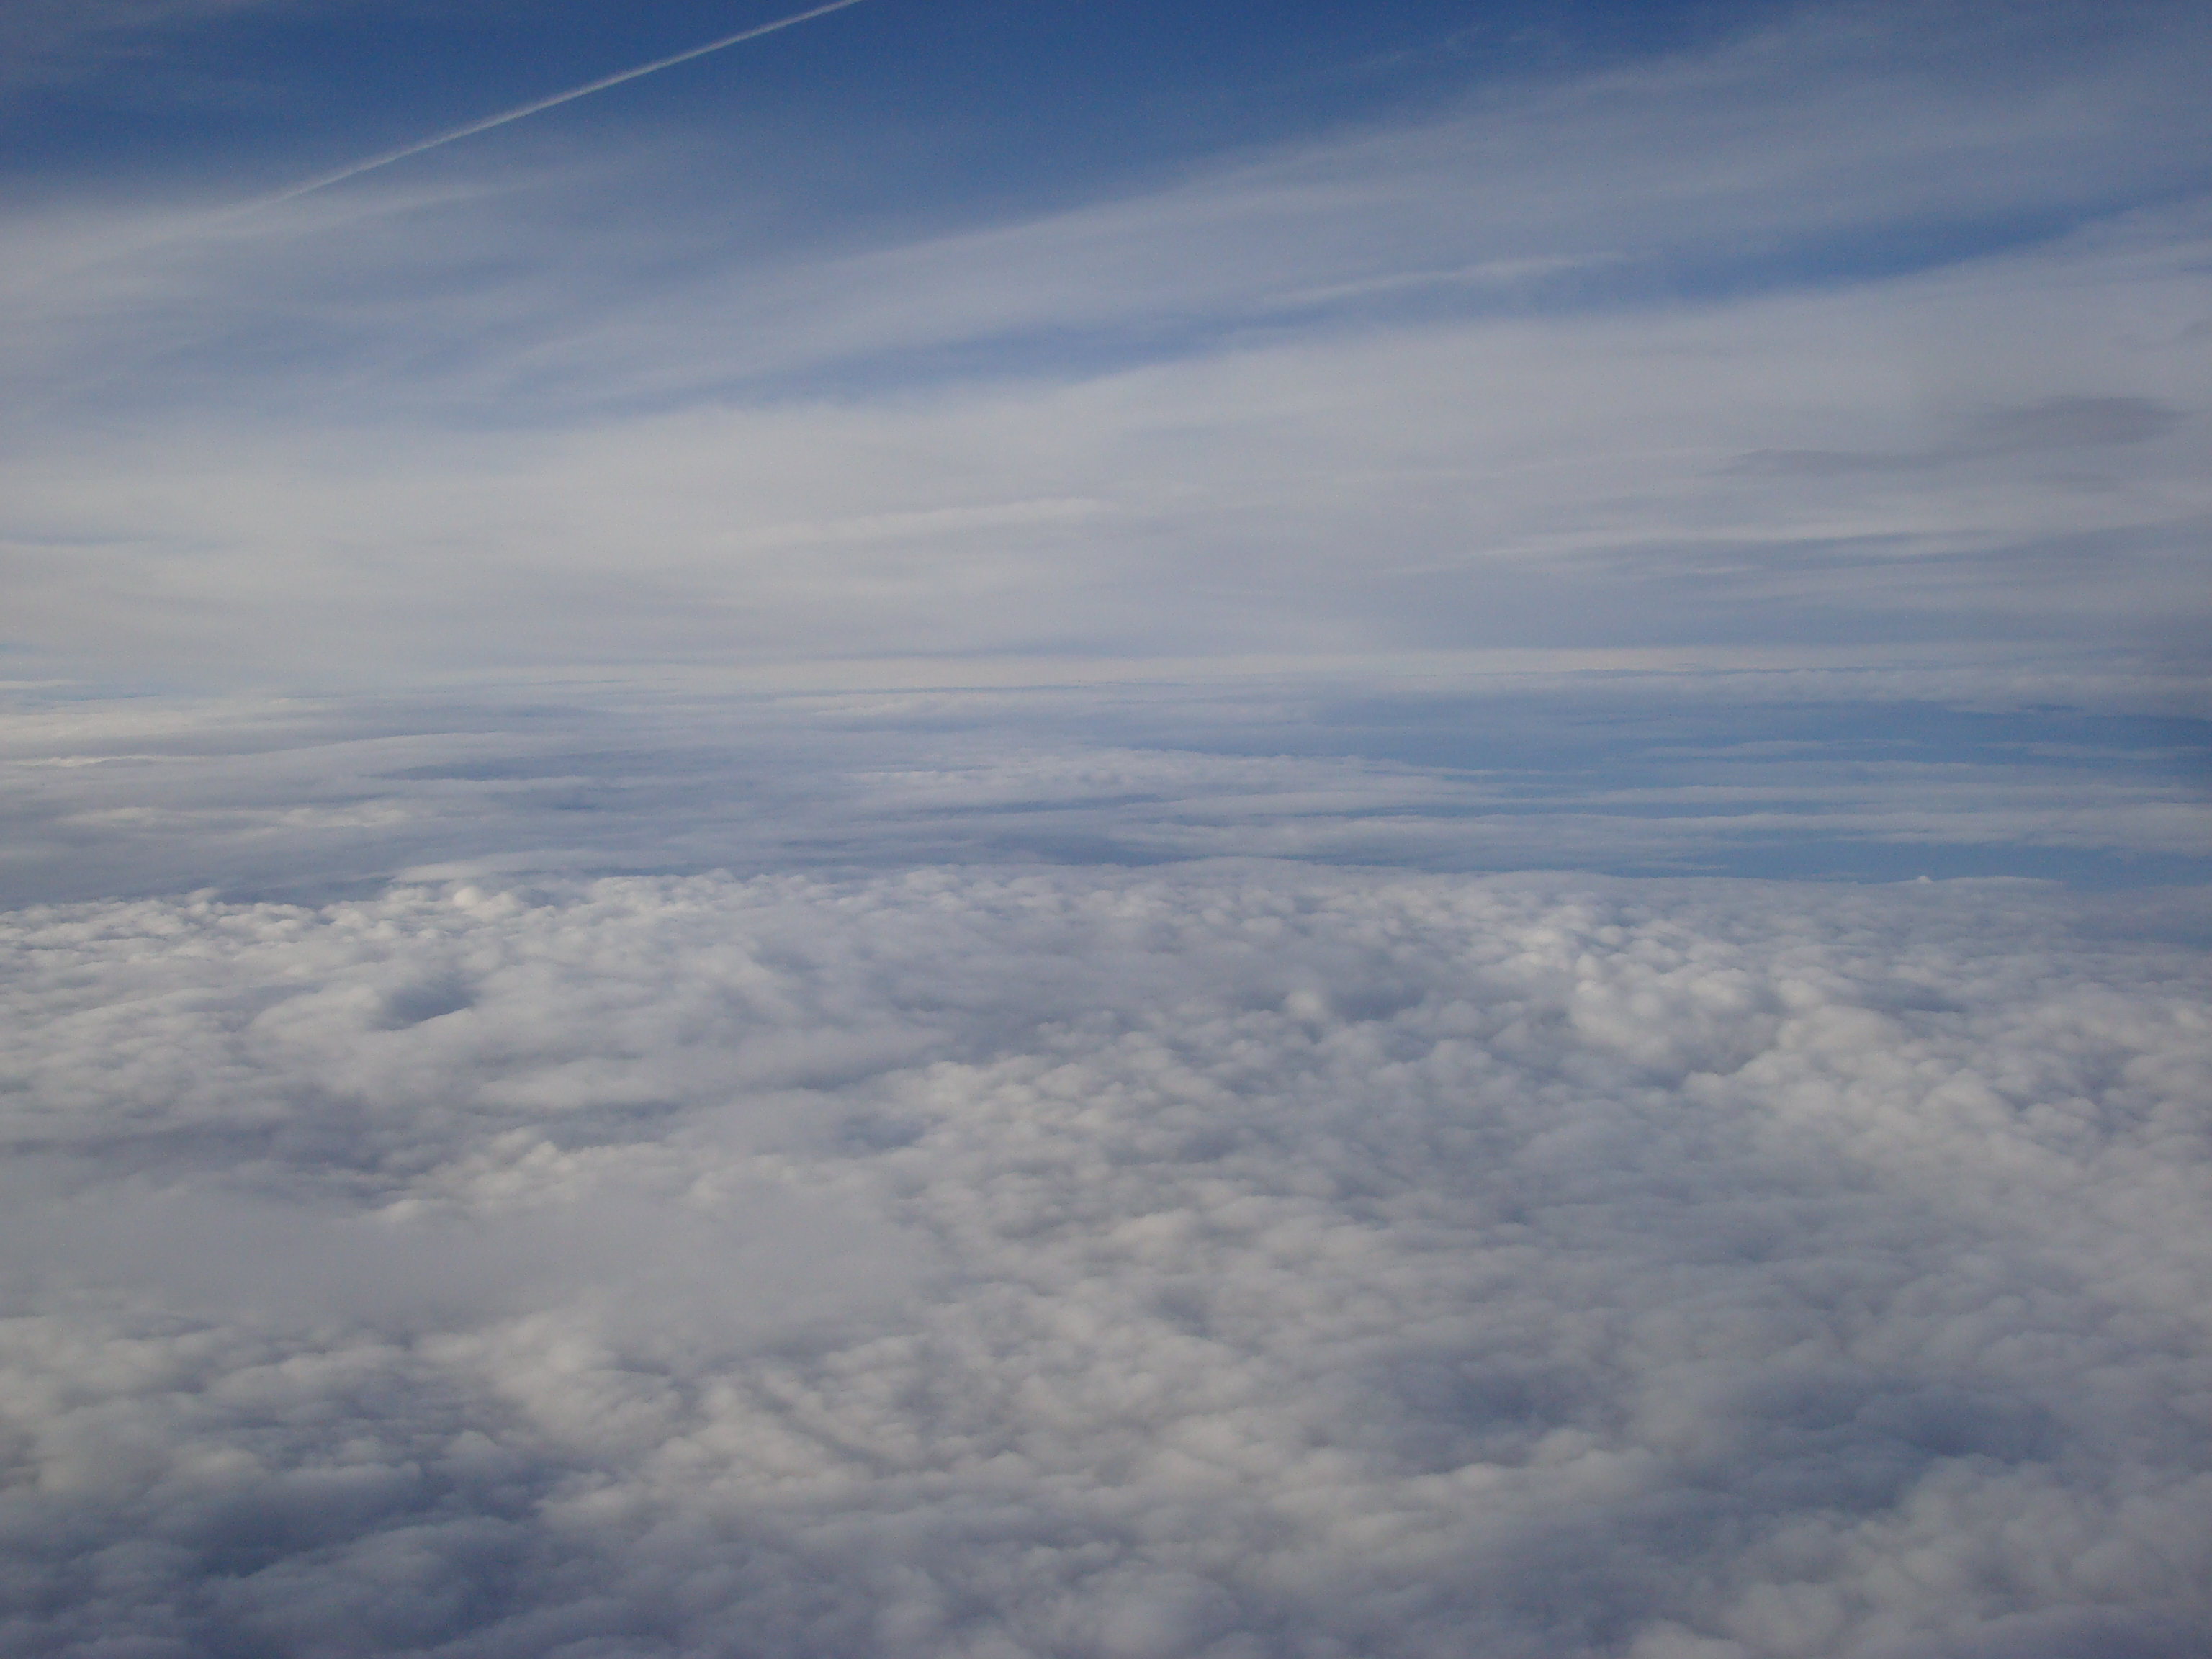 Sky and clouds, Beautiful, Blue, Clouds, Day, HQ Photo